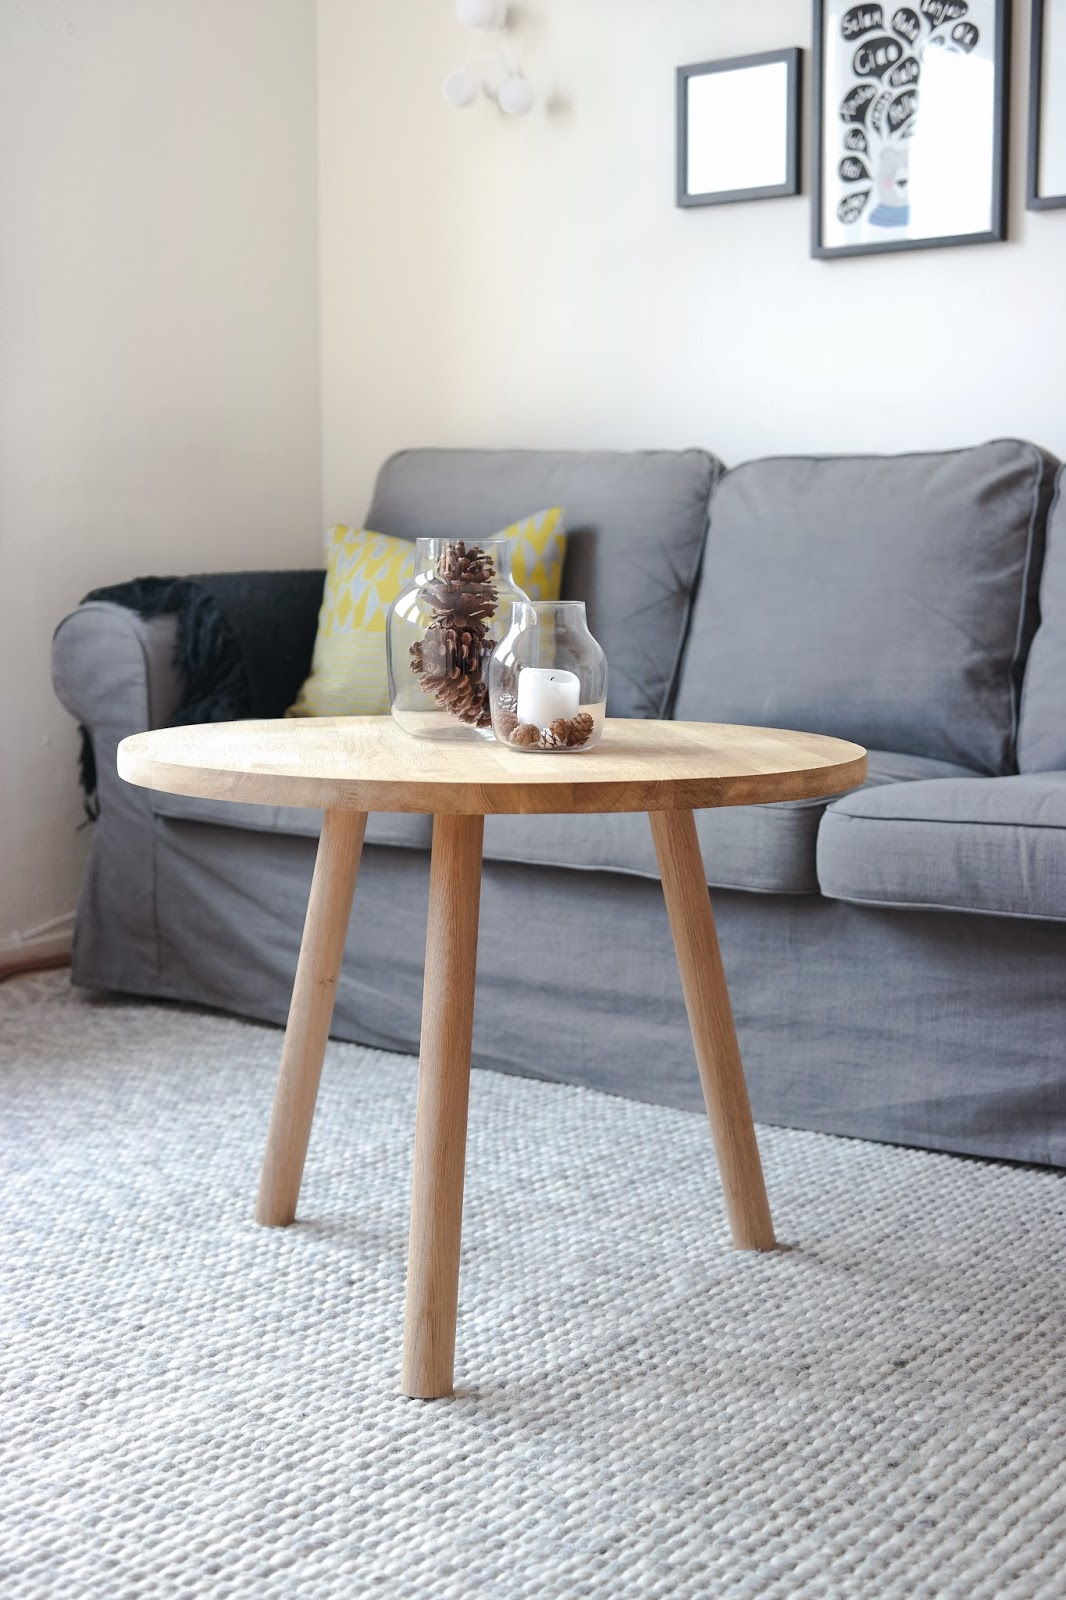 Table Basse Sostrene Grene With Designs Diy Rundt Sofabord I 10 Steg